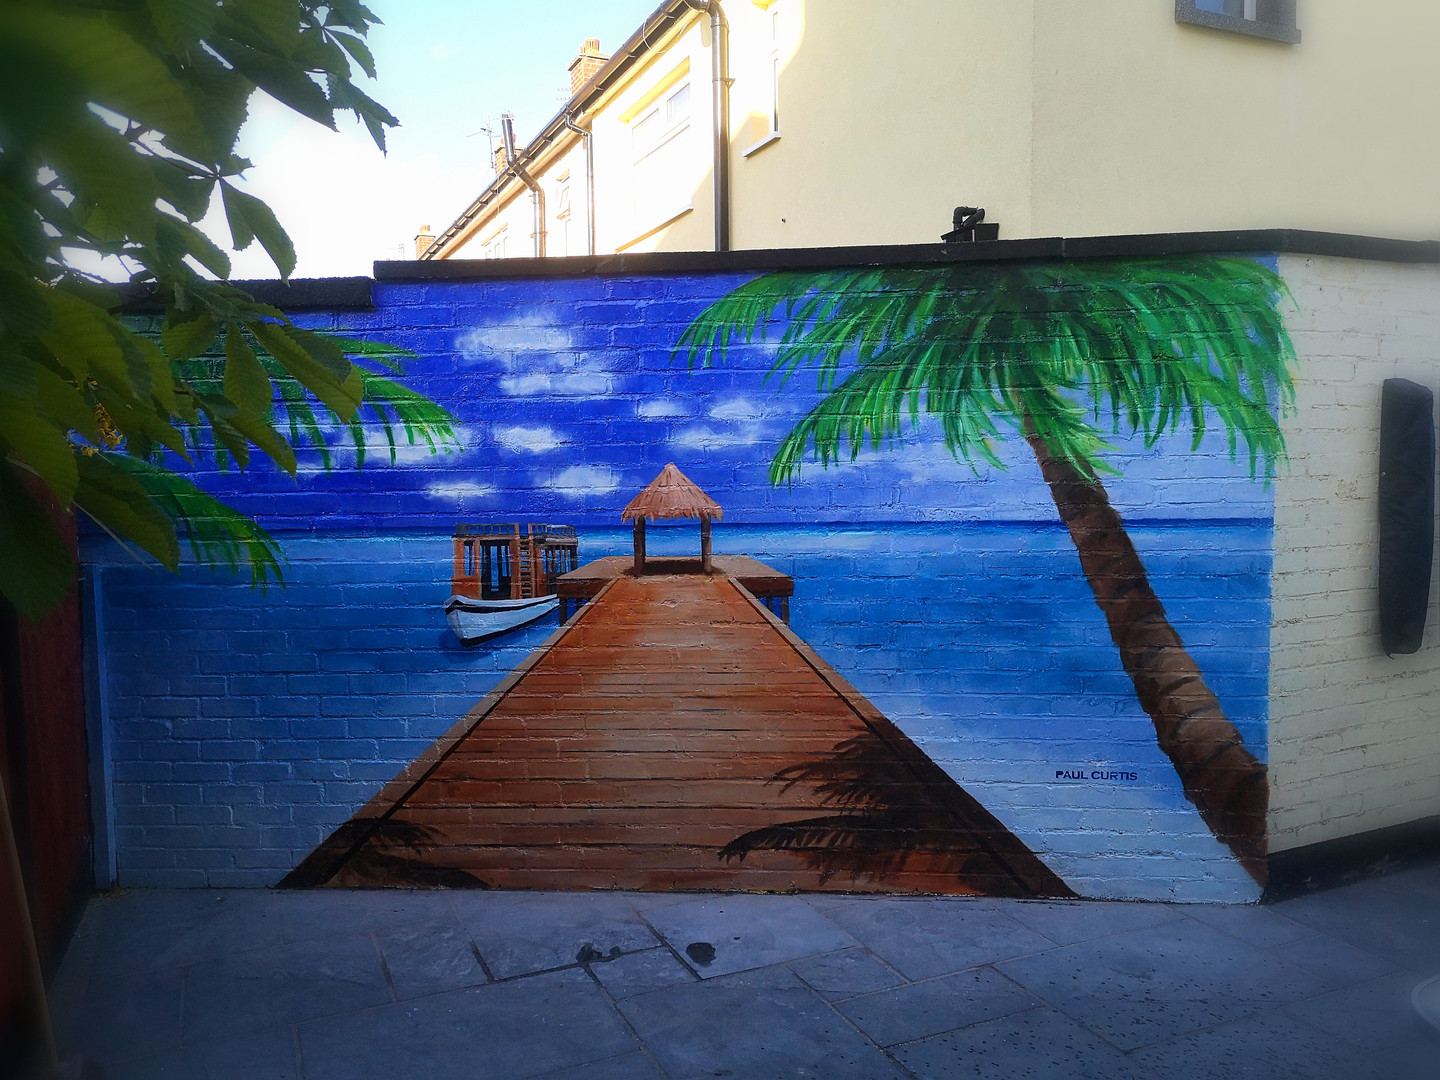 Beach mural painted by Paul Curtis